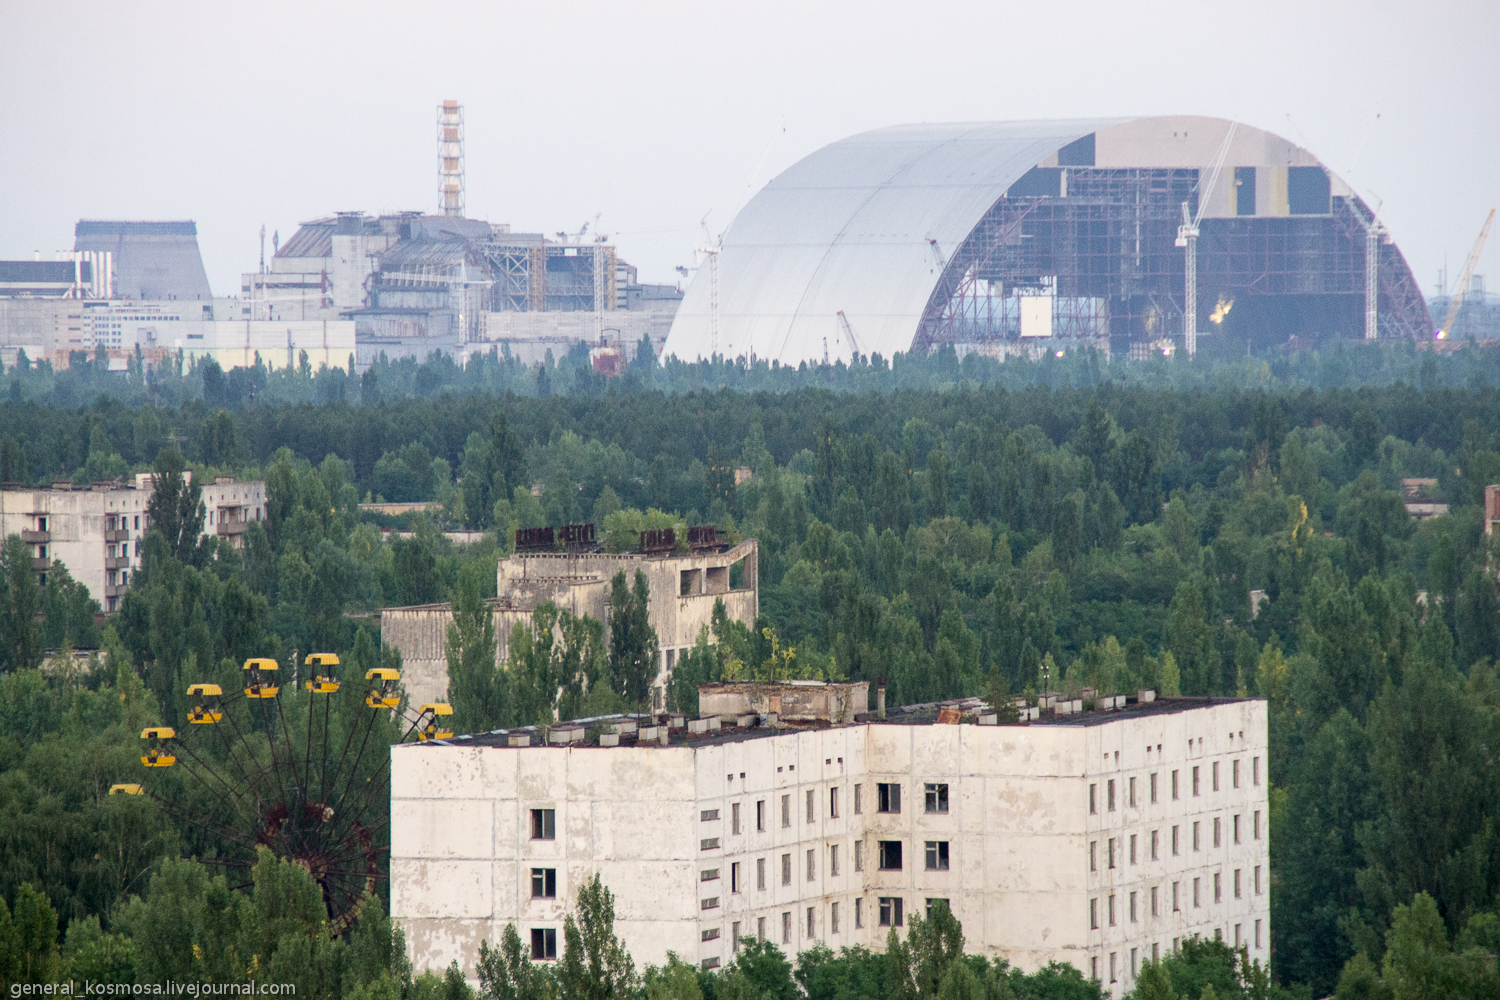 _igp1160 ILLEGAL TOURISM: CHERNOBYL ZONE BY STALKER'S EYES